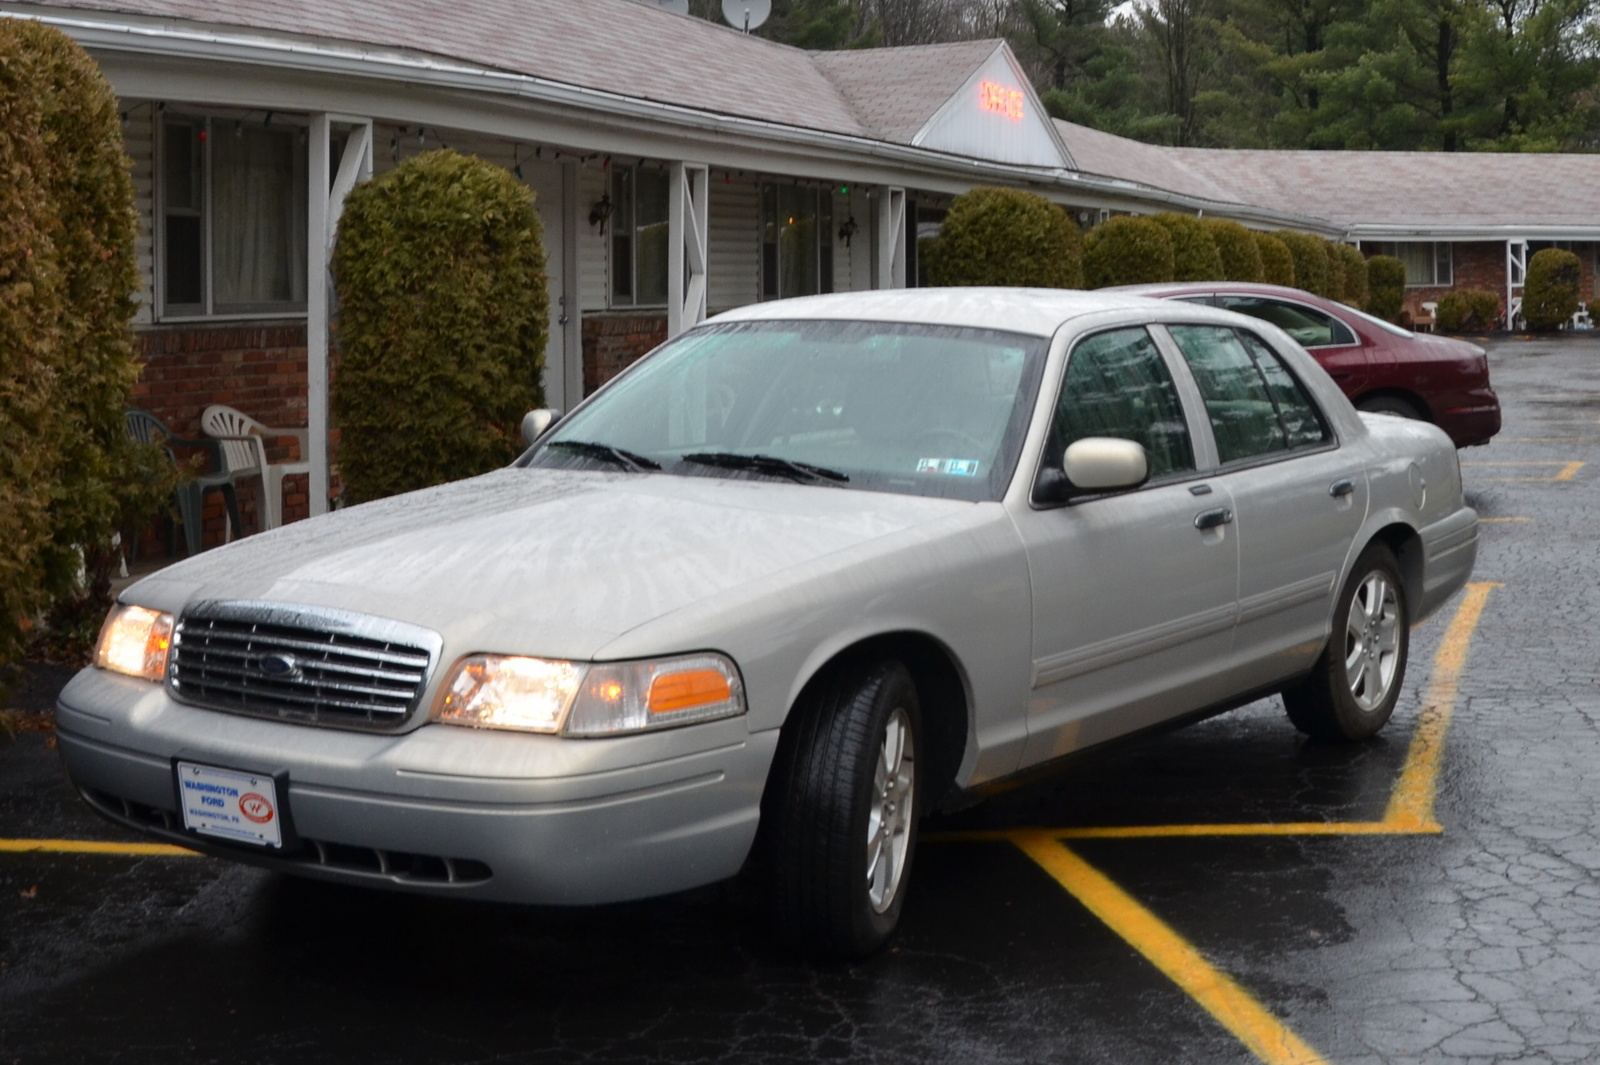 2011 Ford Crown Victoria - Pictures